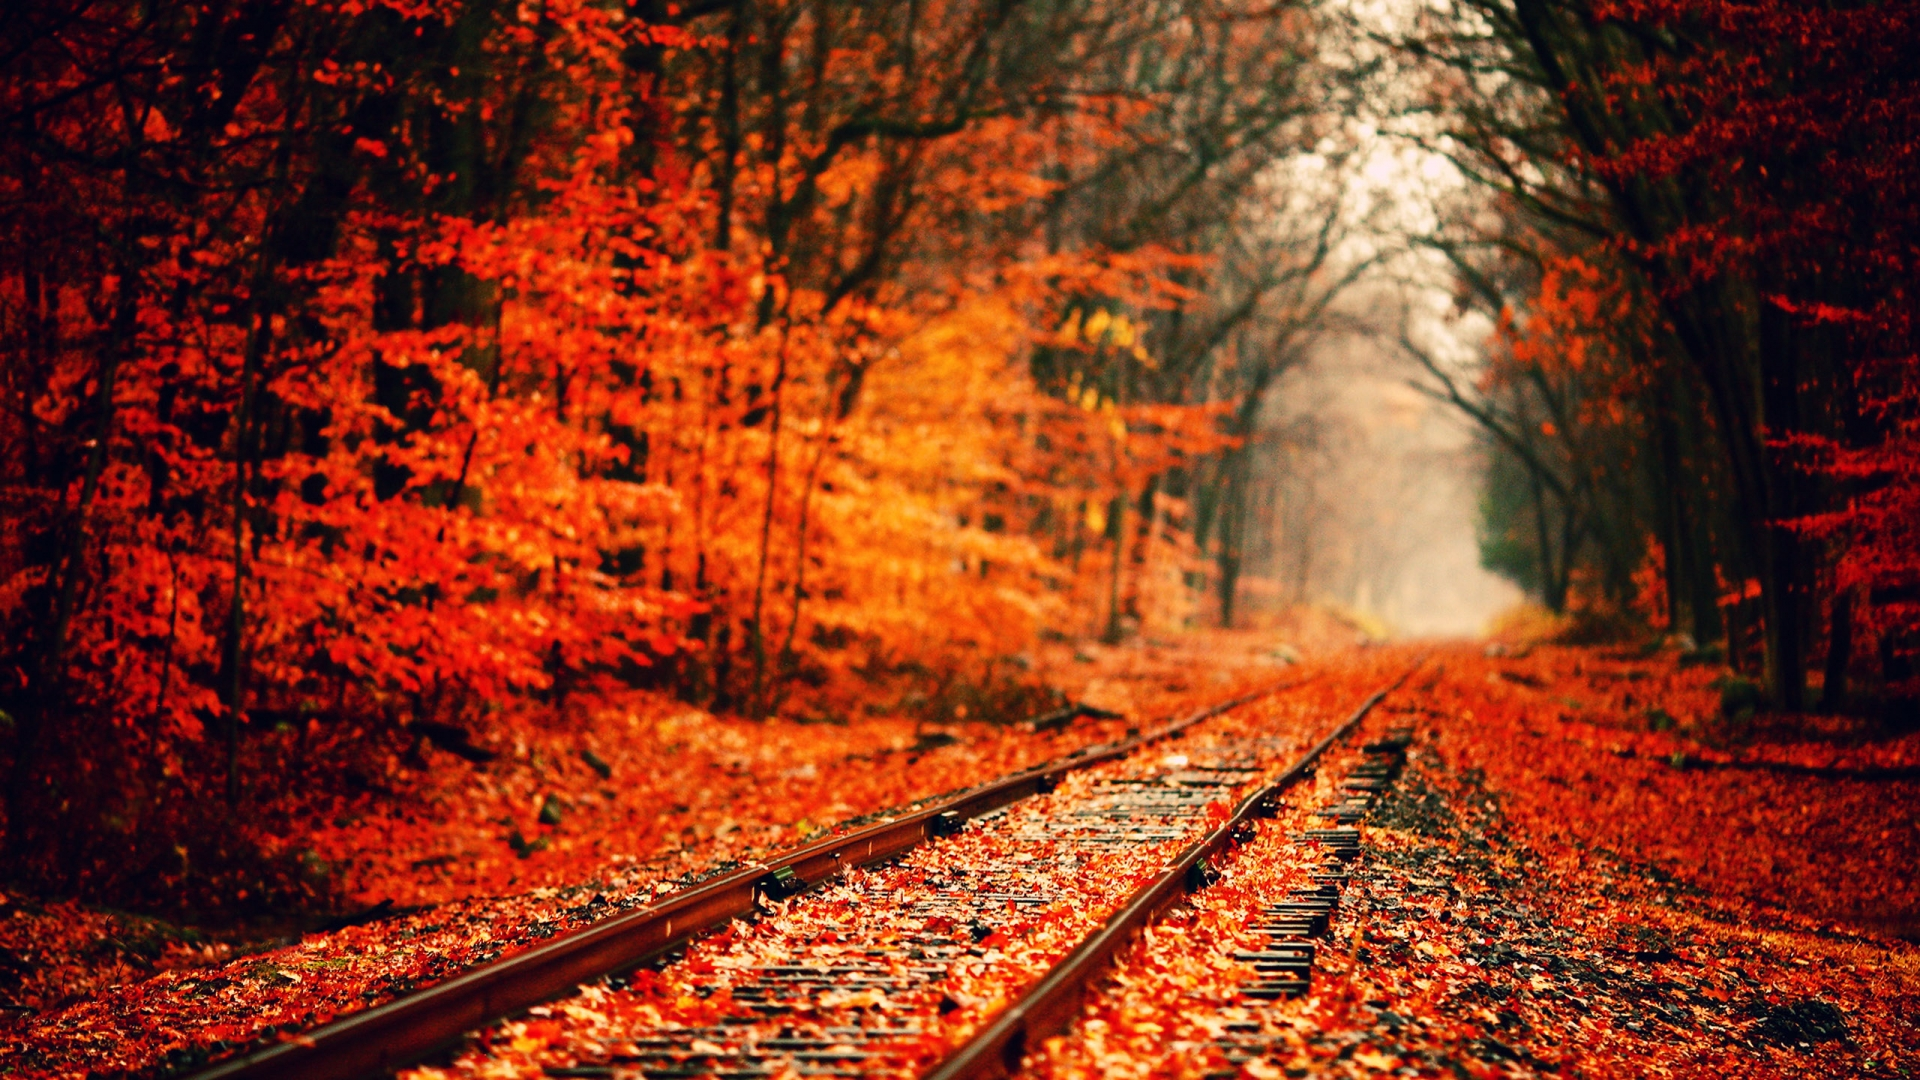 HD Fall Desktop Wallpaper - WallpaperSafari